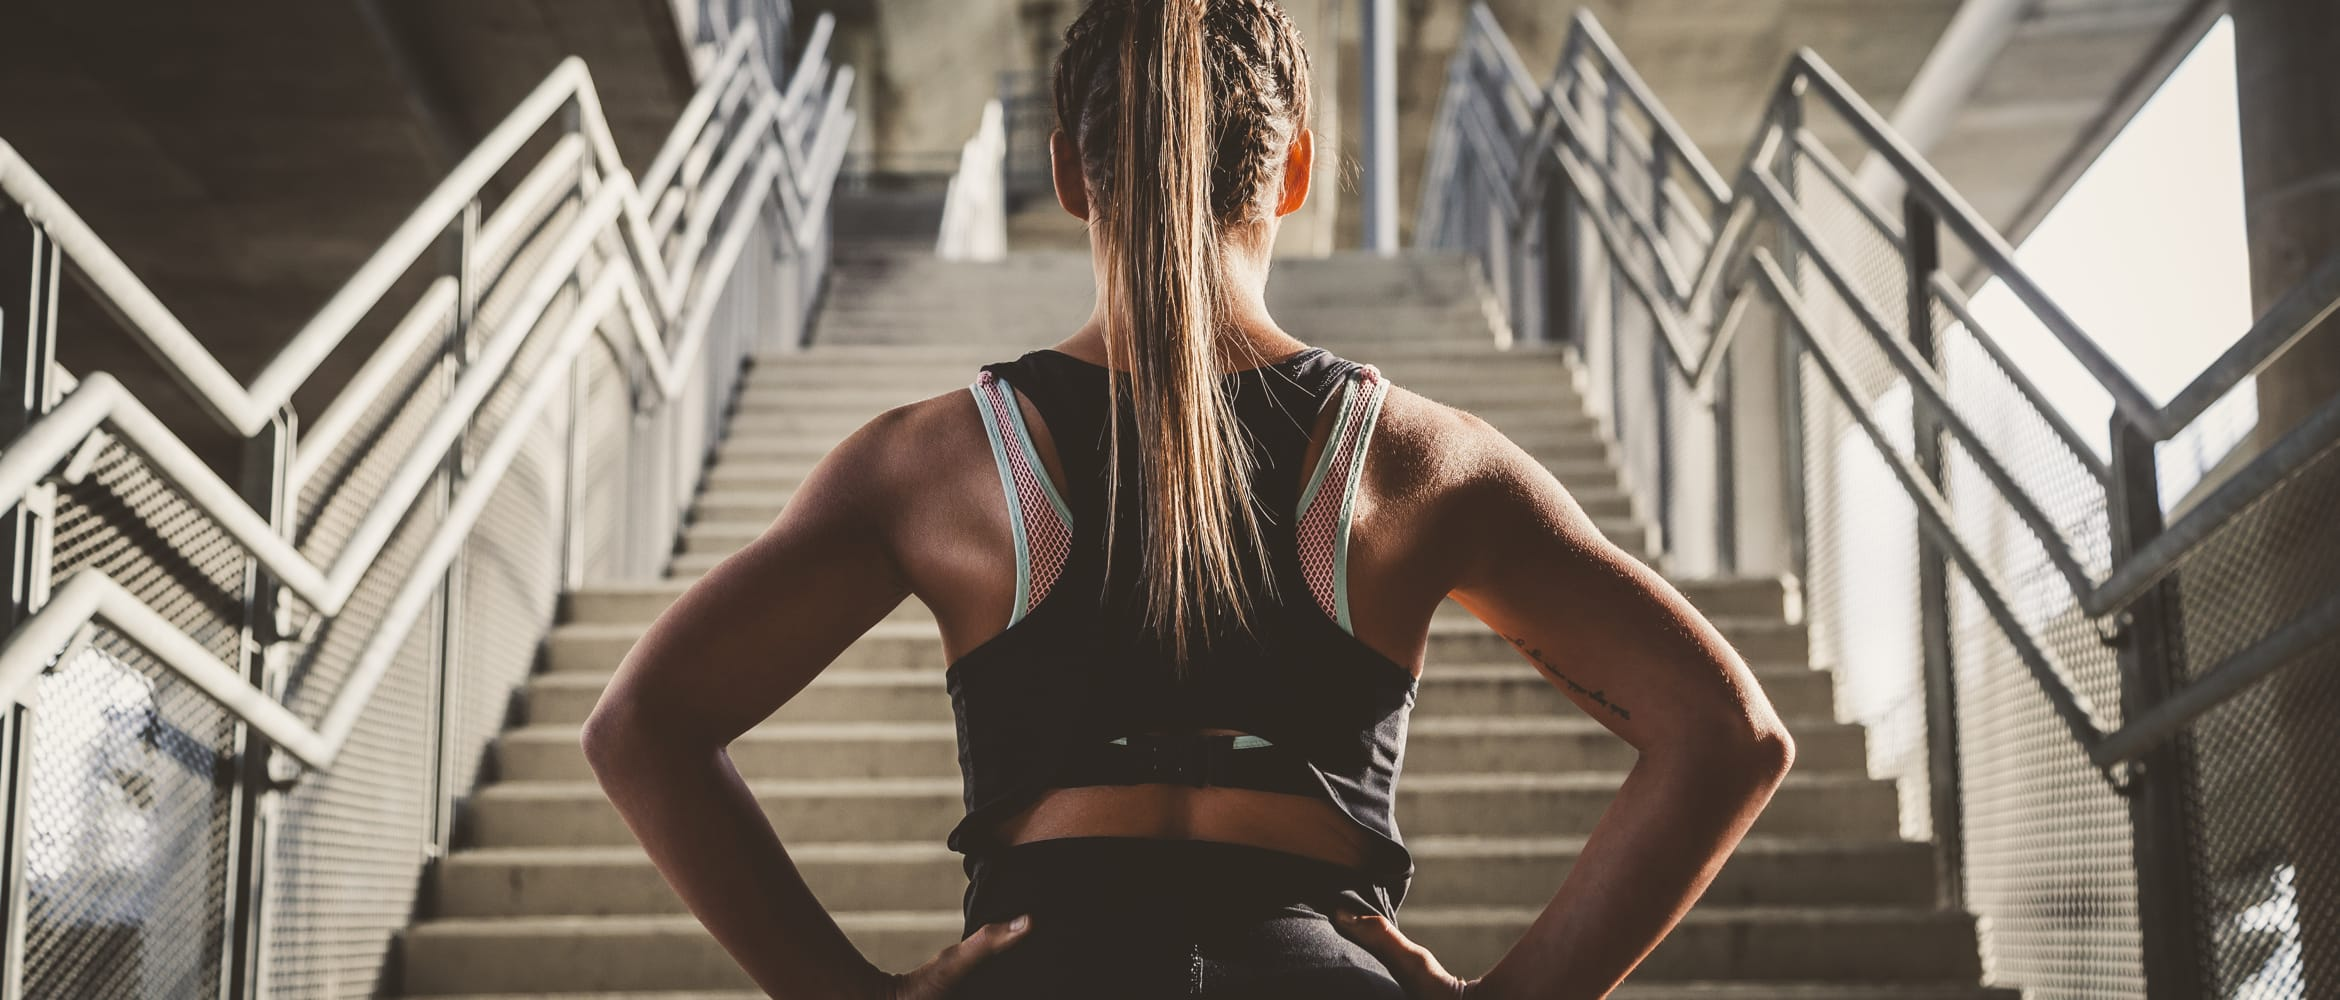 woman in gym kit prepares to run up steps